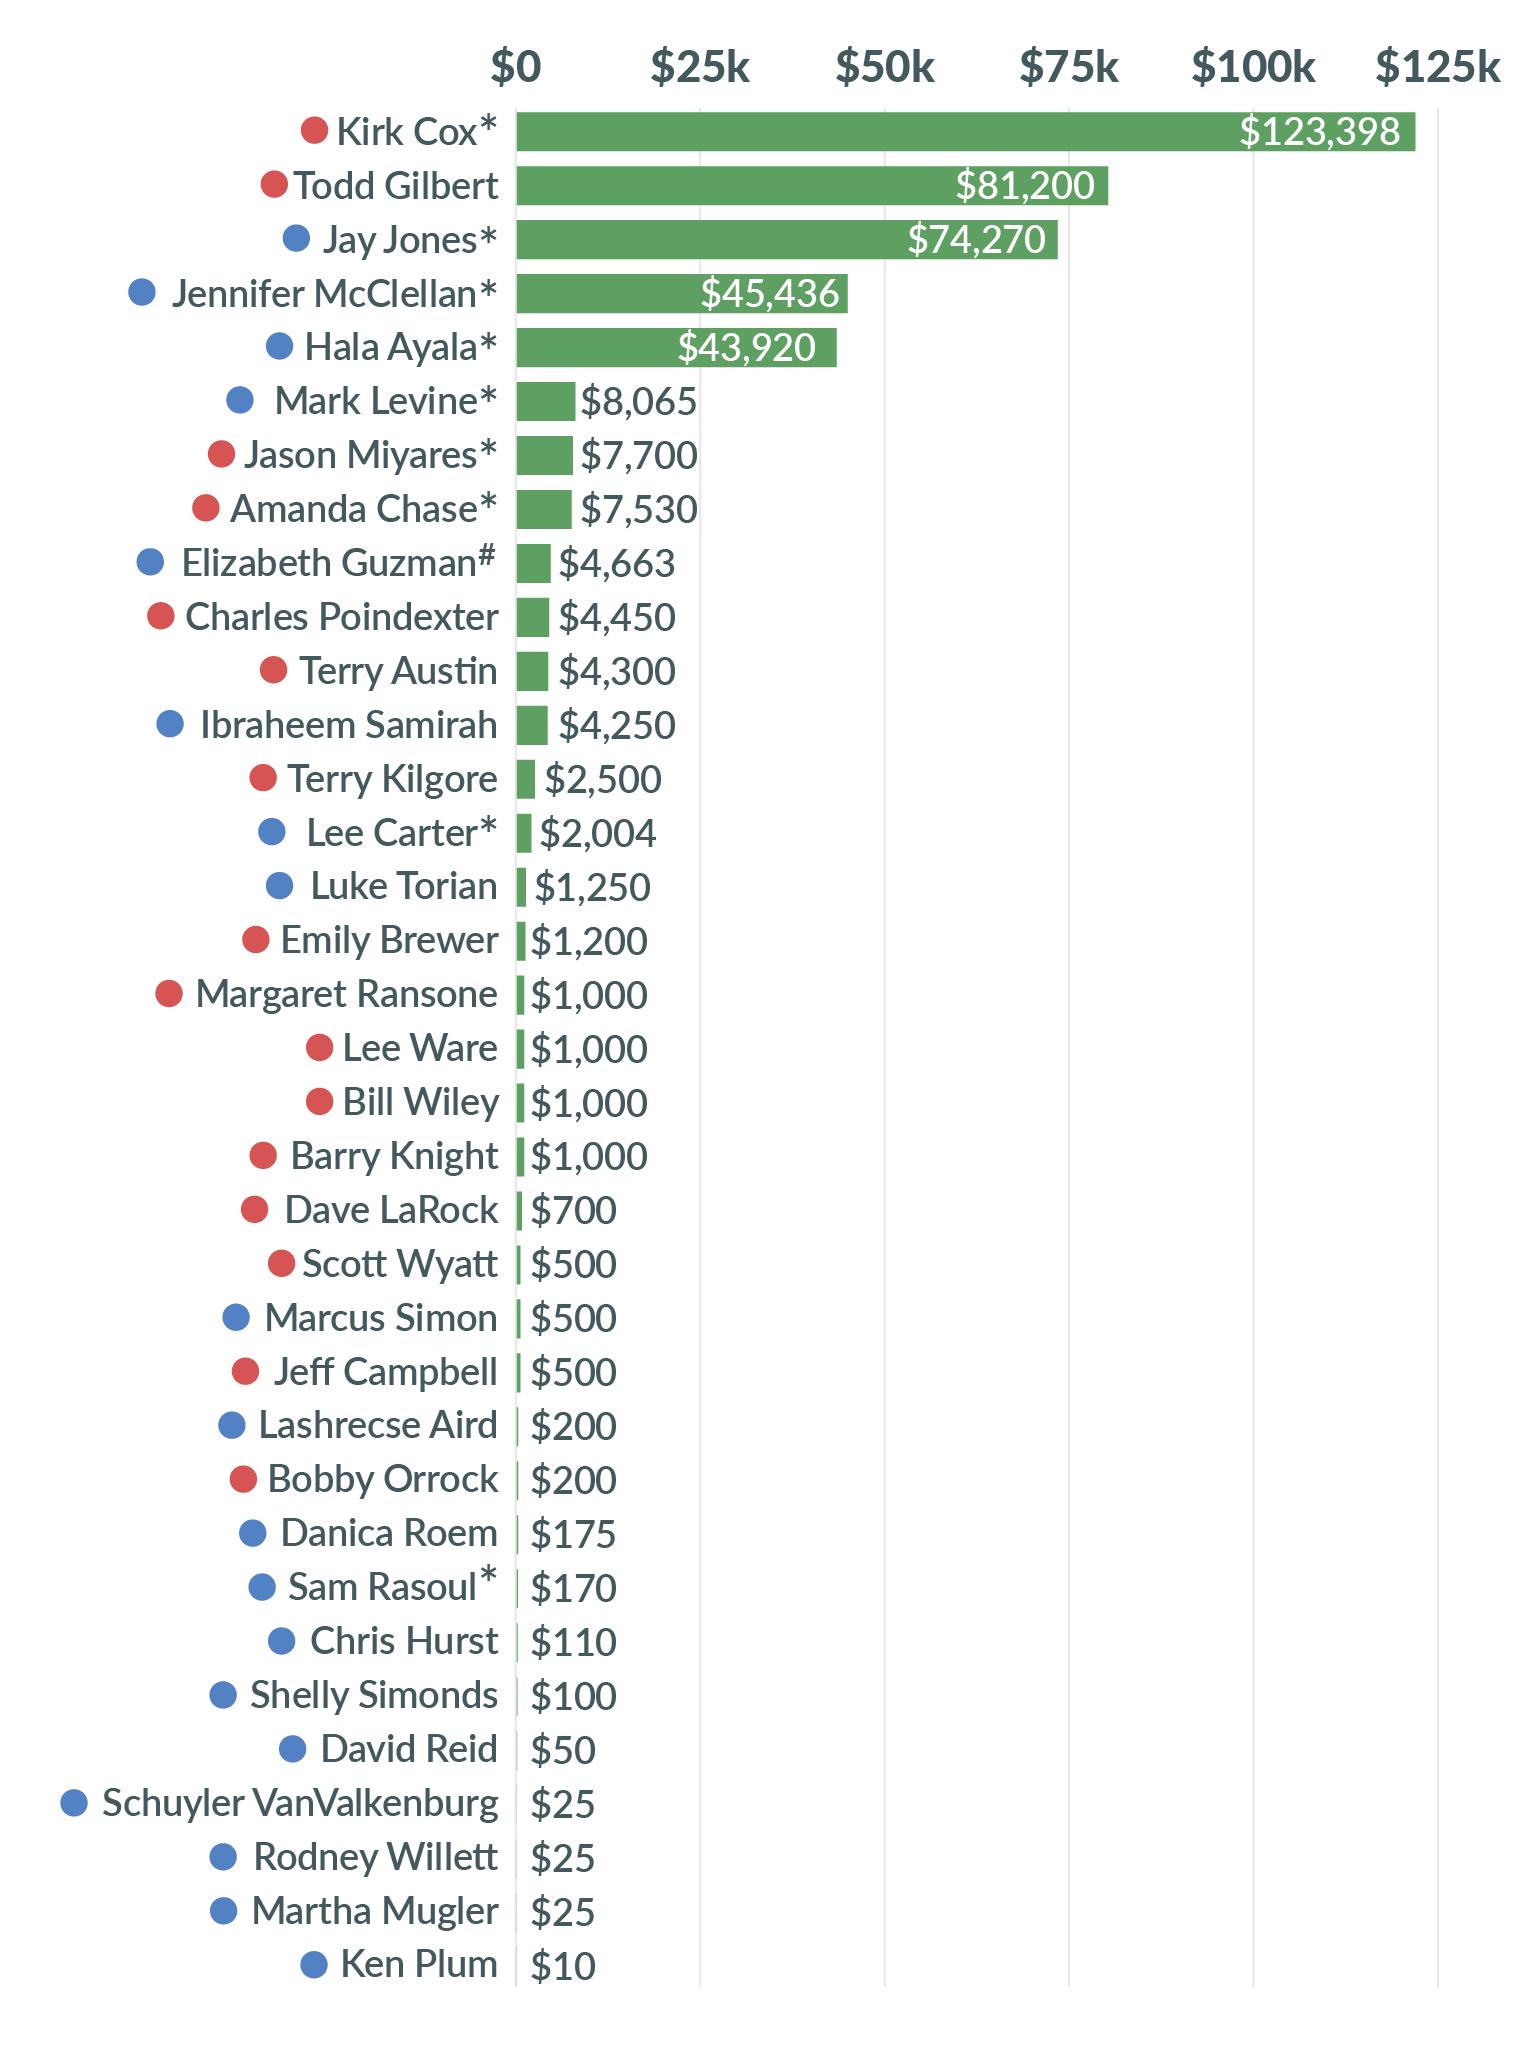 bar chart comparing total amounts raised by house candidates or committees